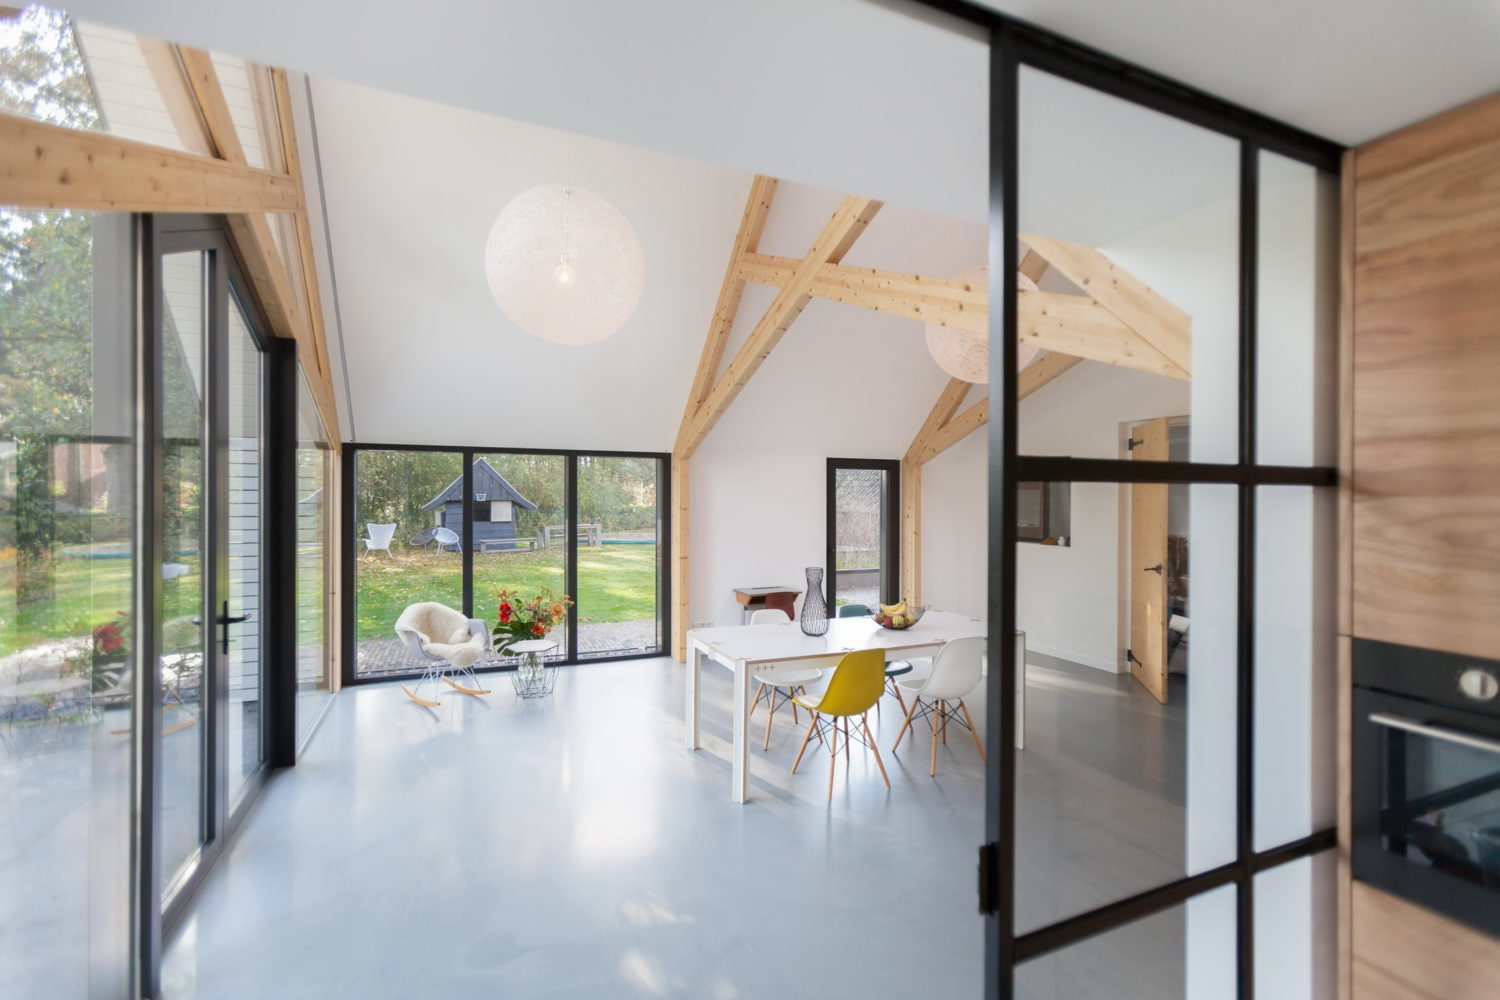 Barn Living | Farmhouse Renovation by Bureau Fraai